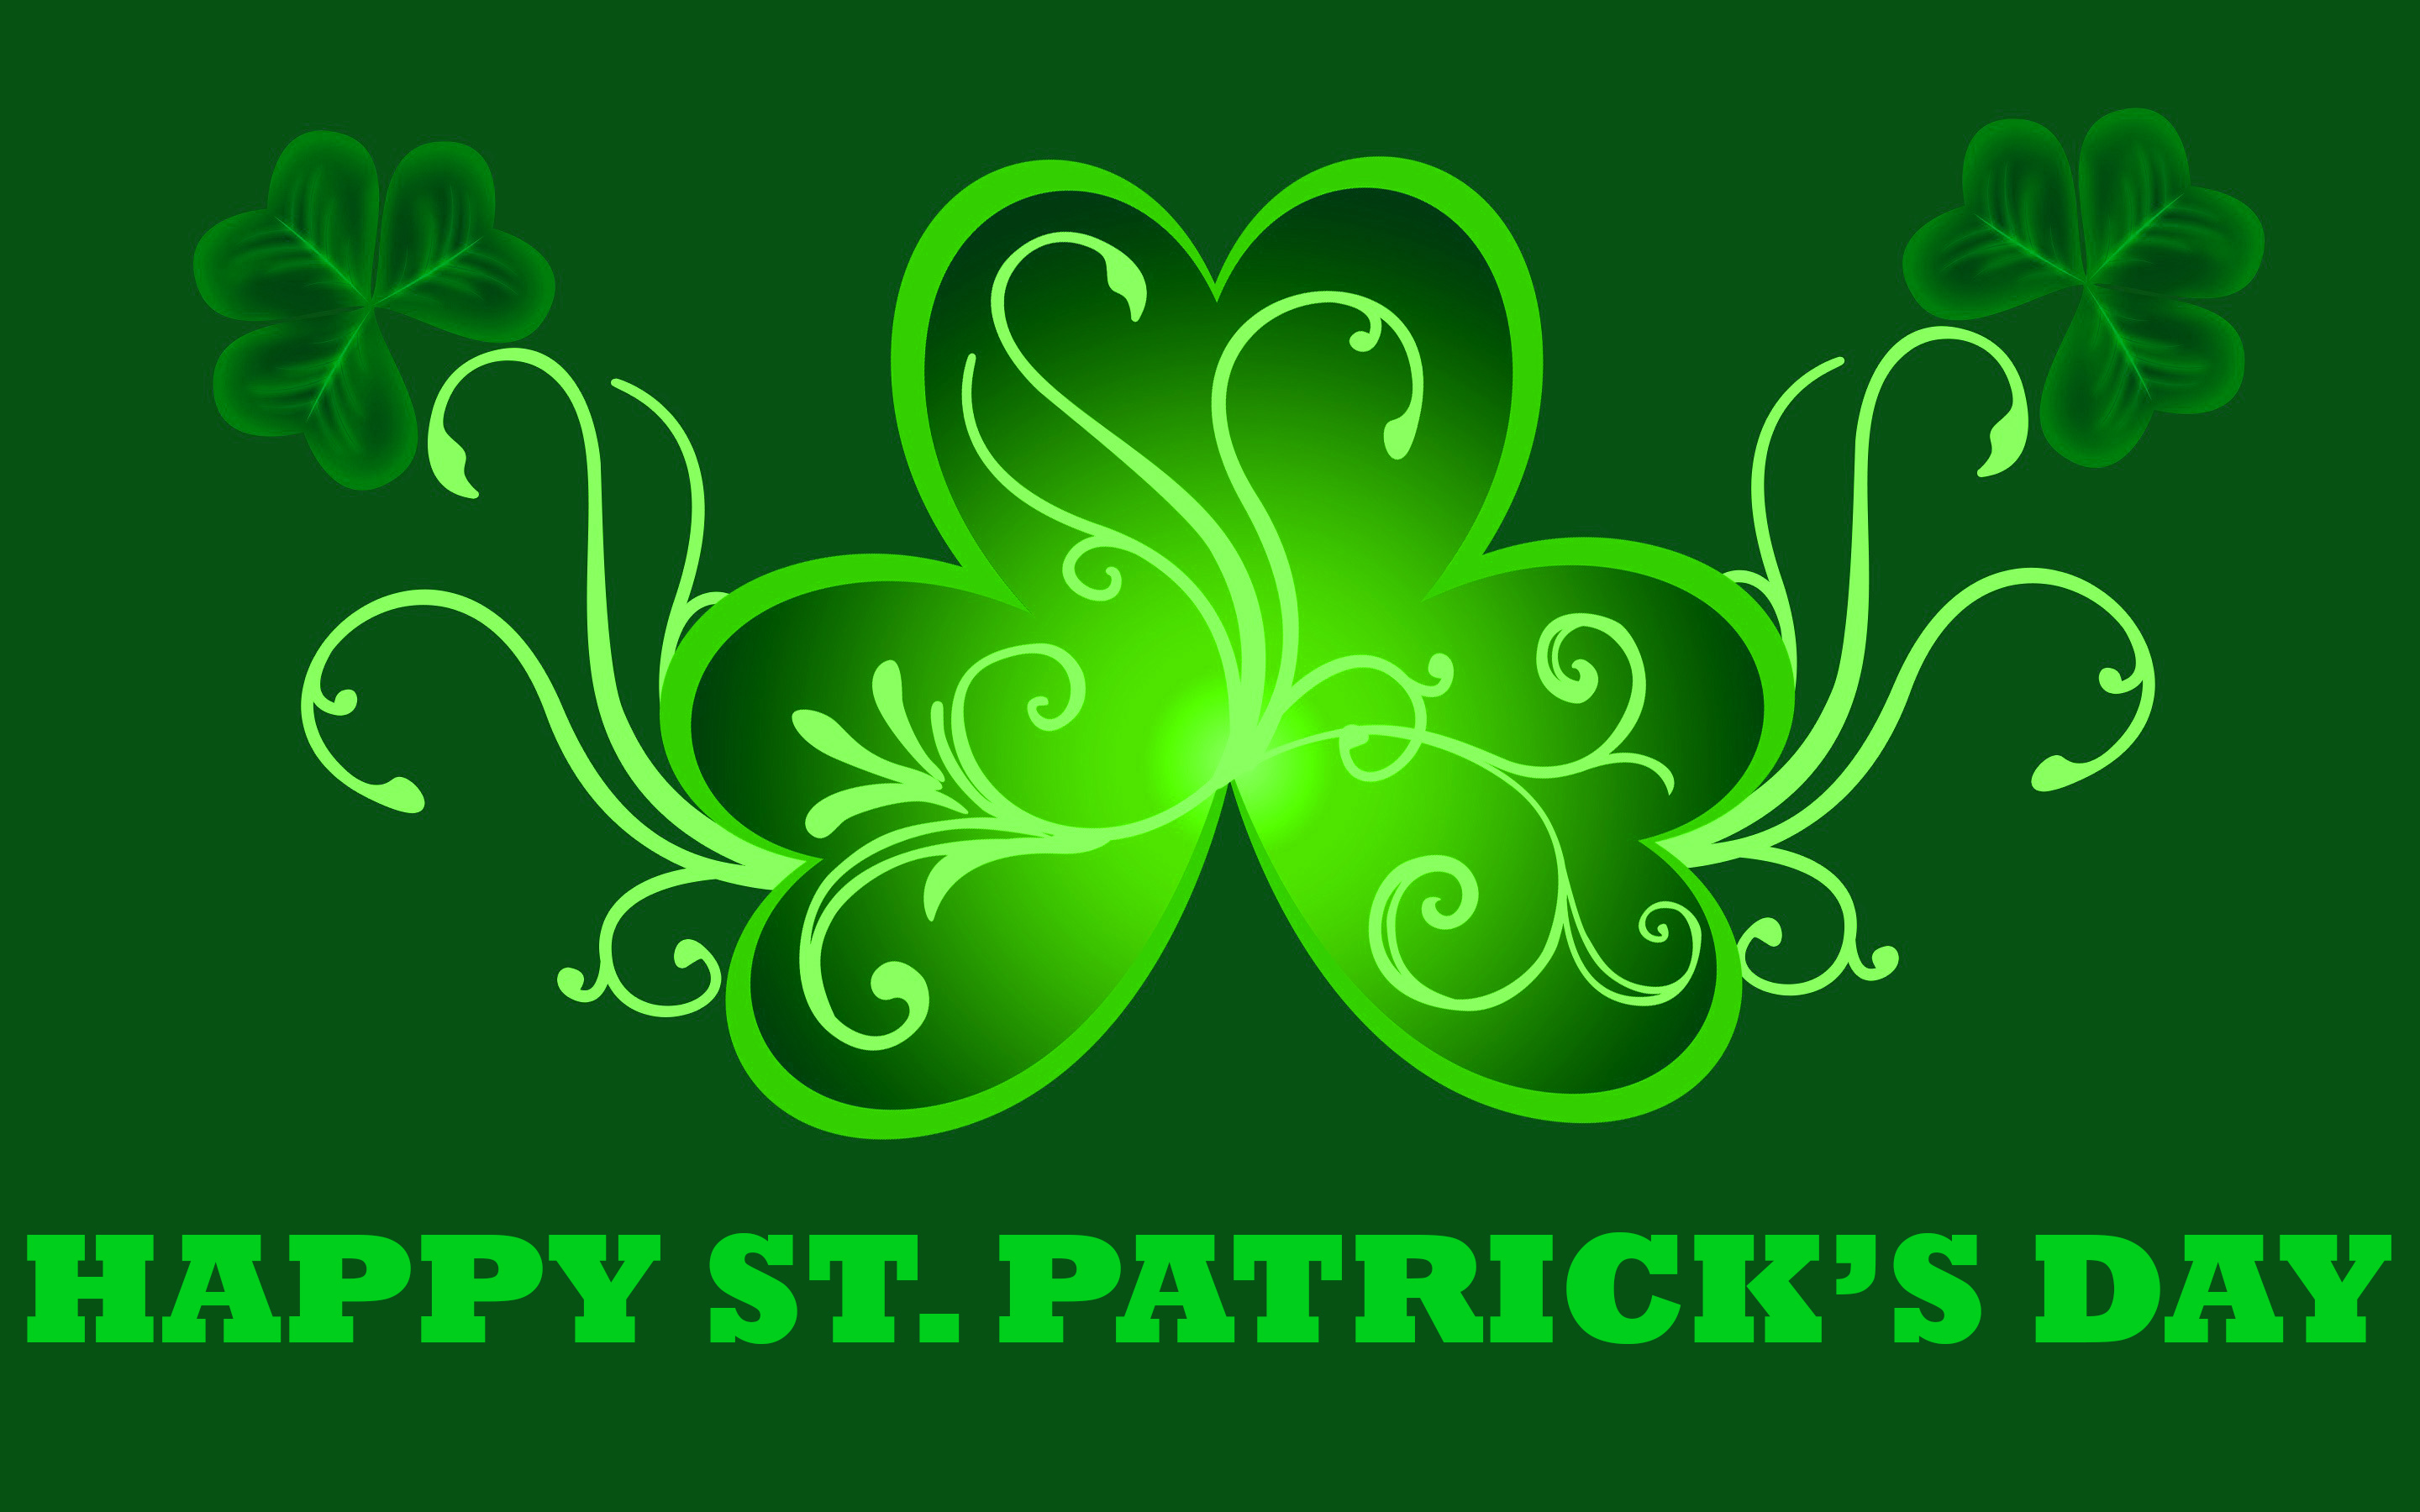 Happy St Patricks Day 2020 Images Quotes Clipart Coloring 2880x1800